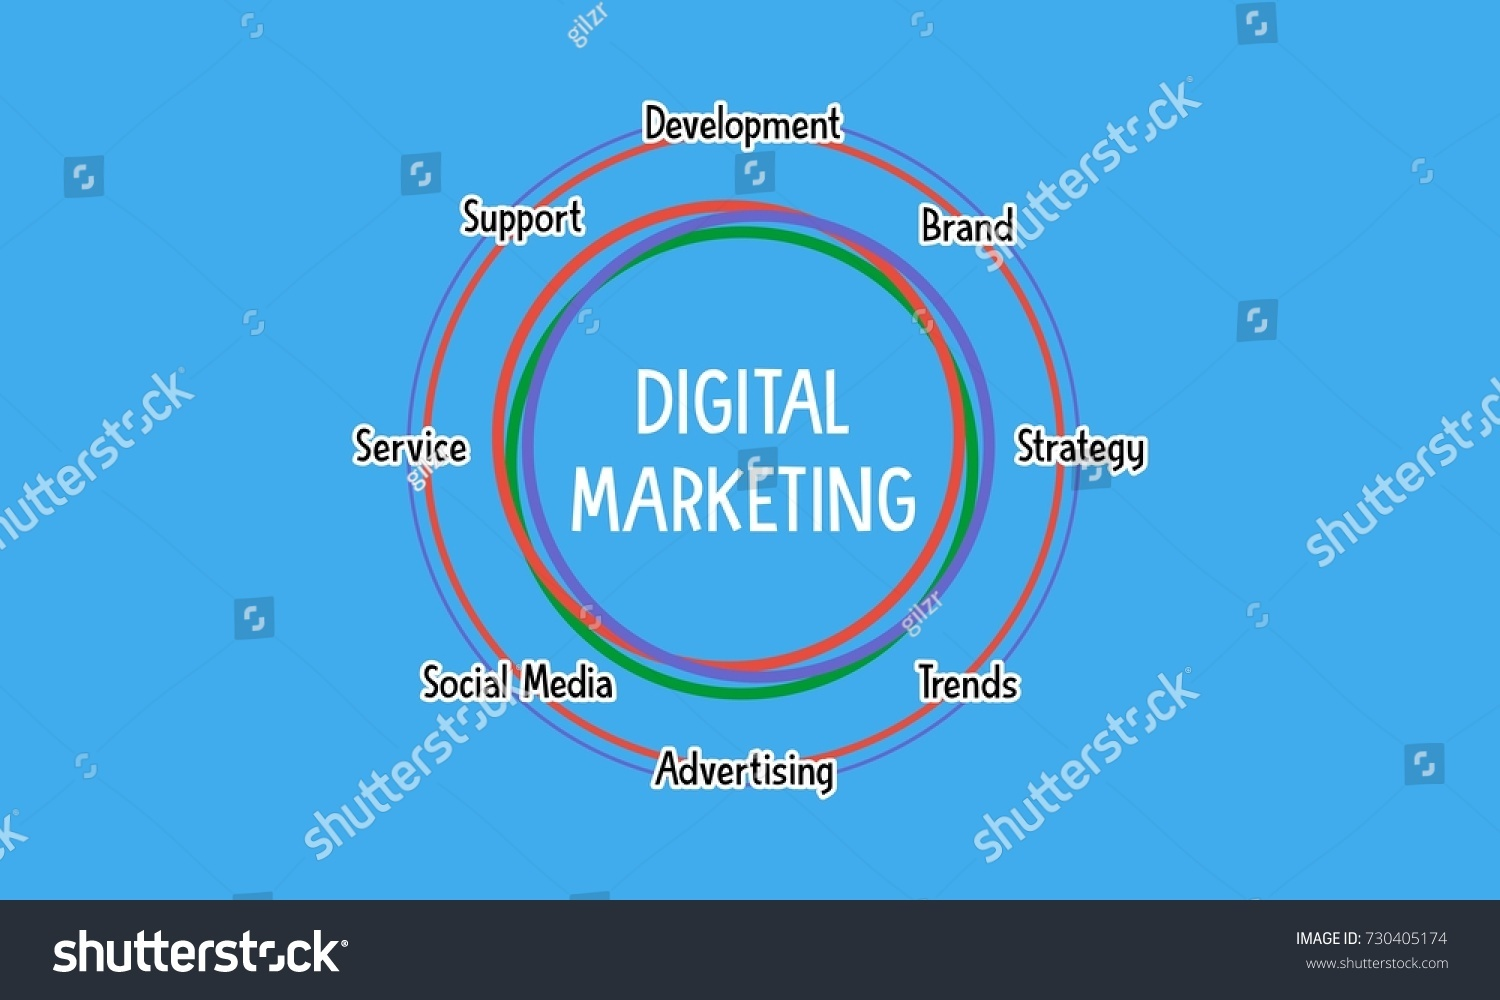 Digital Marketing In Swindon Social Media Total